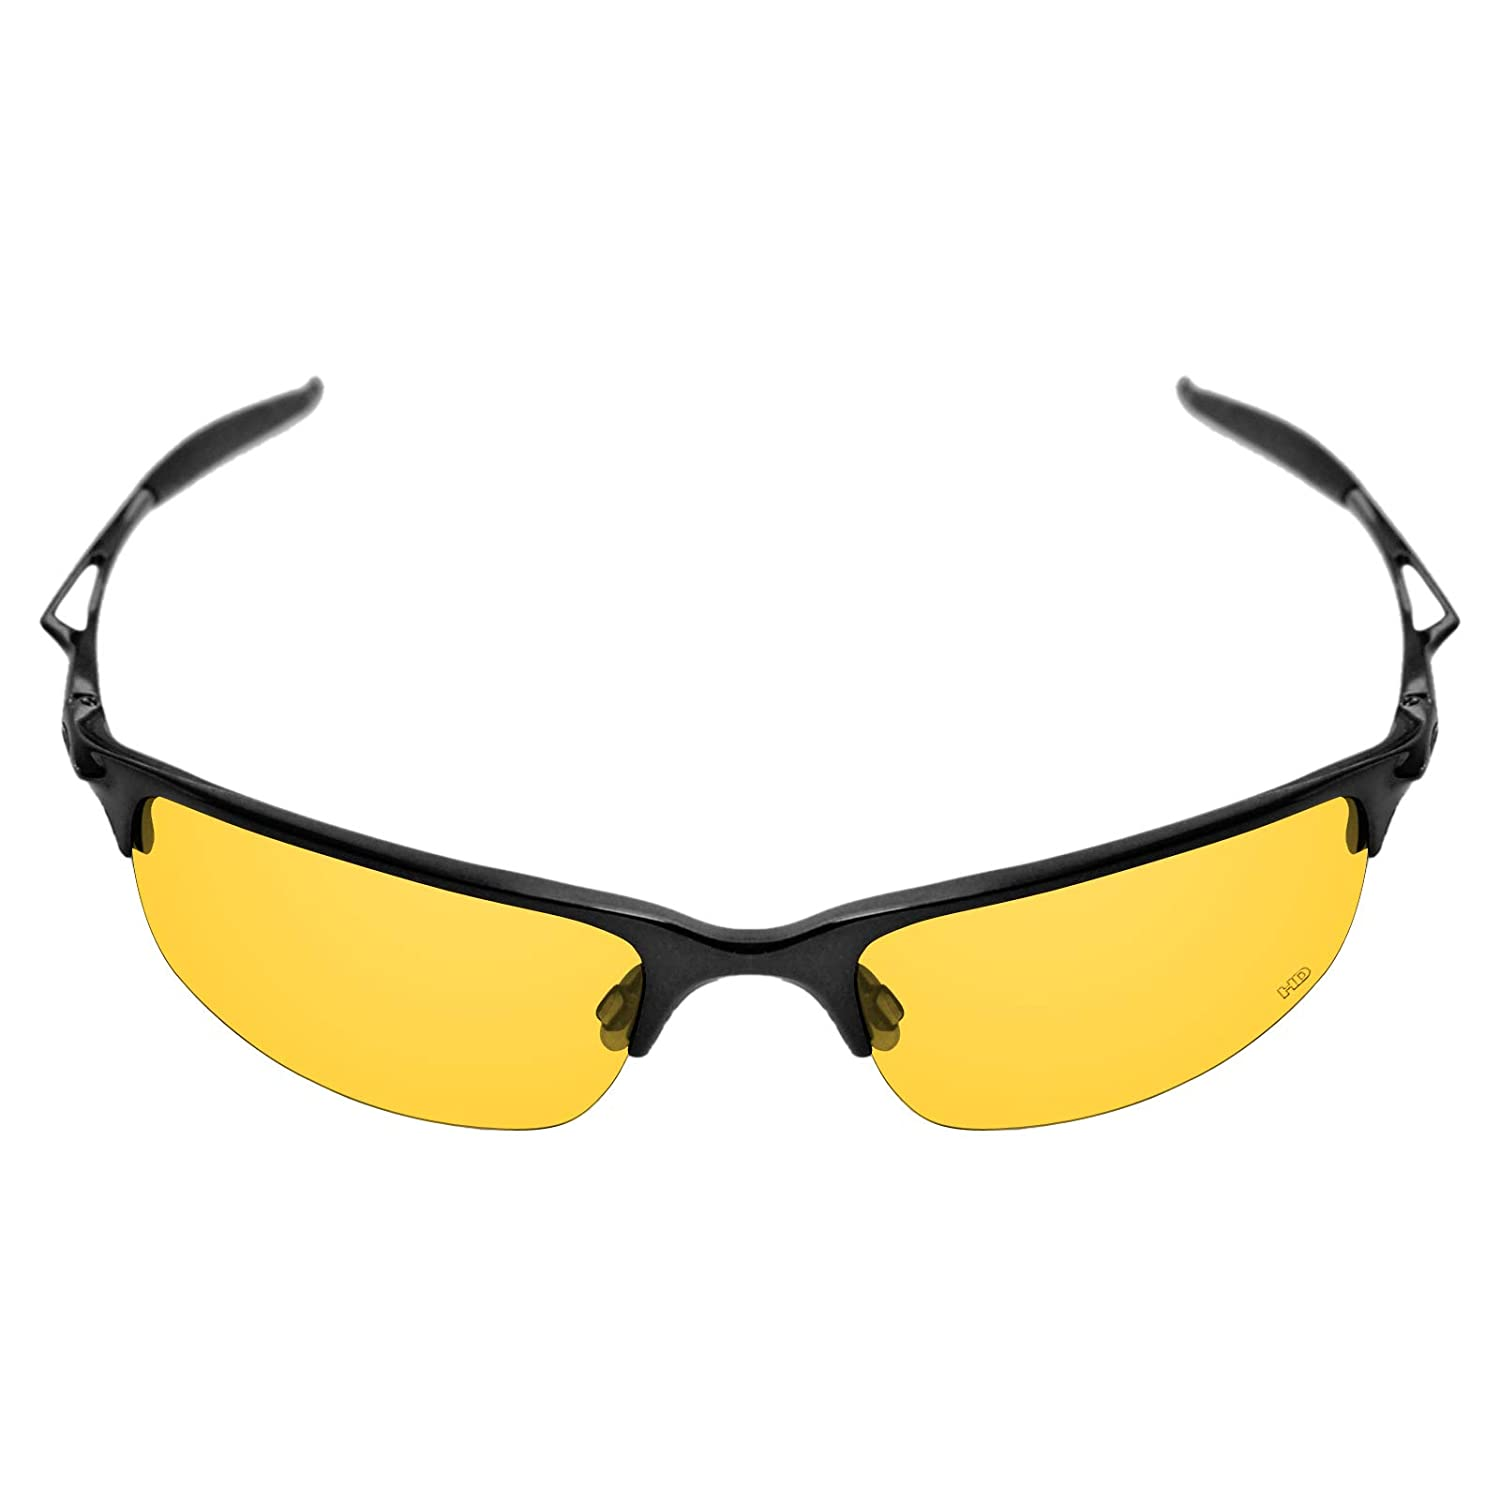 f9d9ee4b609 Mryok+ Polarized Replacement Lenses for Oakley Half Wire 2.0 - HD Yellow   Amazon.ca  Clothing   Accessories